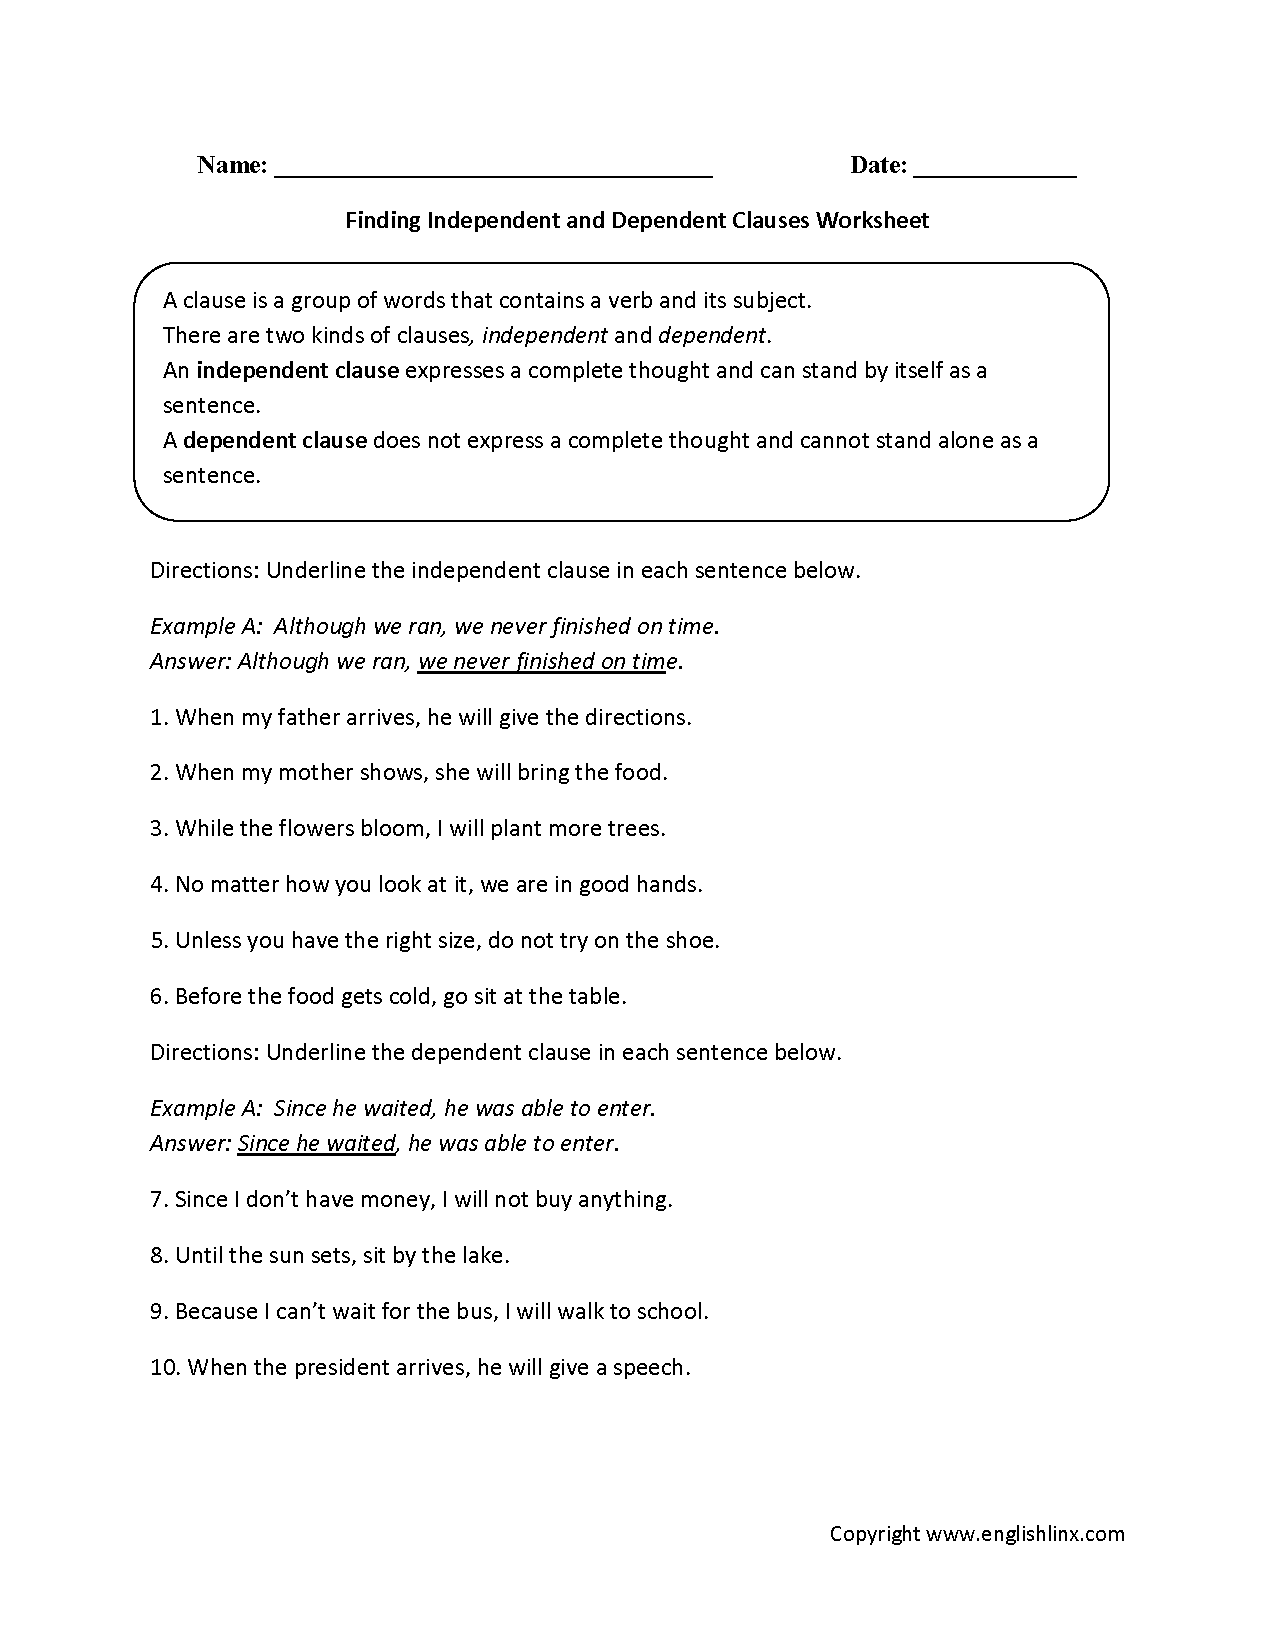 Finding Independent And Dependent Clauses Worksheet